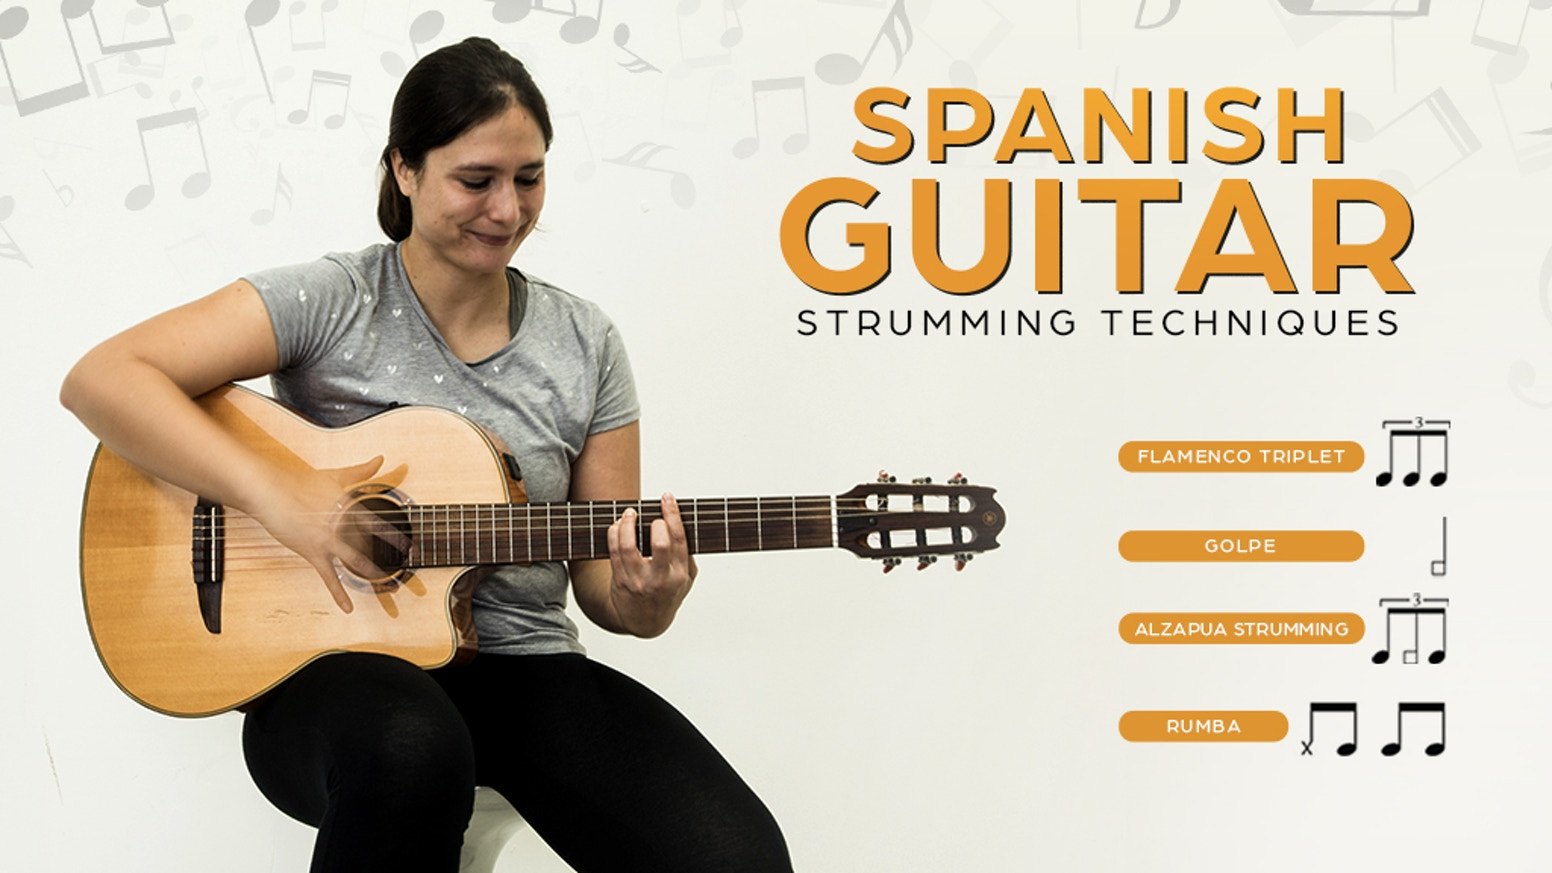 19 guitar lessons to teach you Spanish Guitar Strumming Techniques, in the form of a book and video lessons.